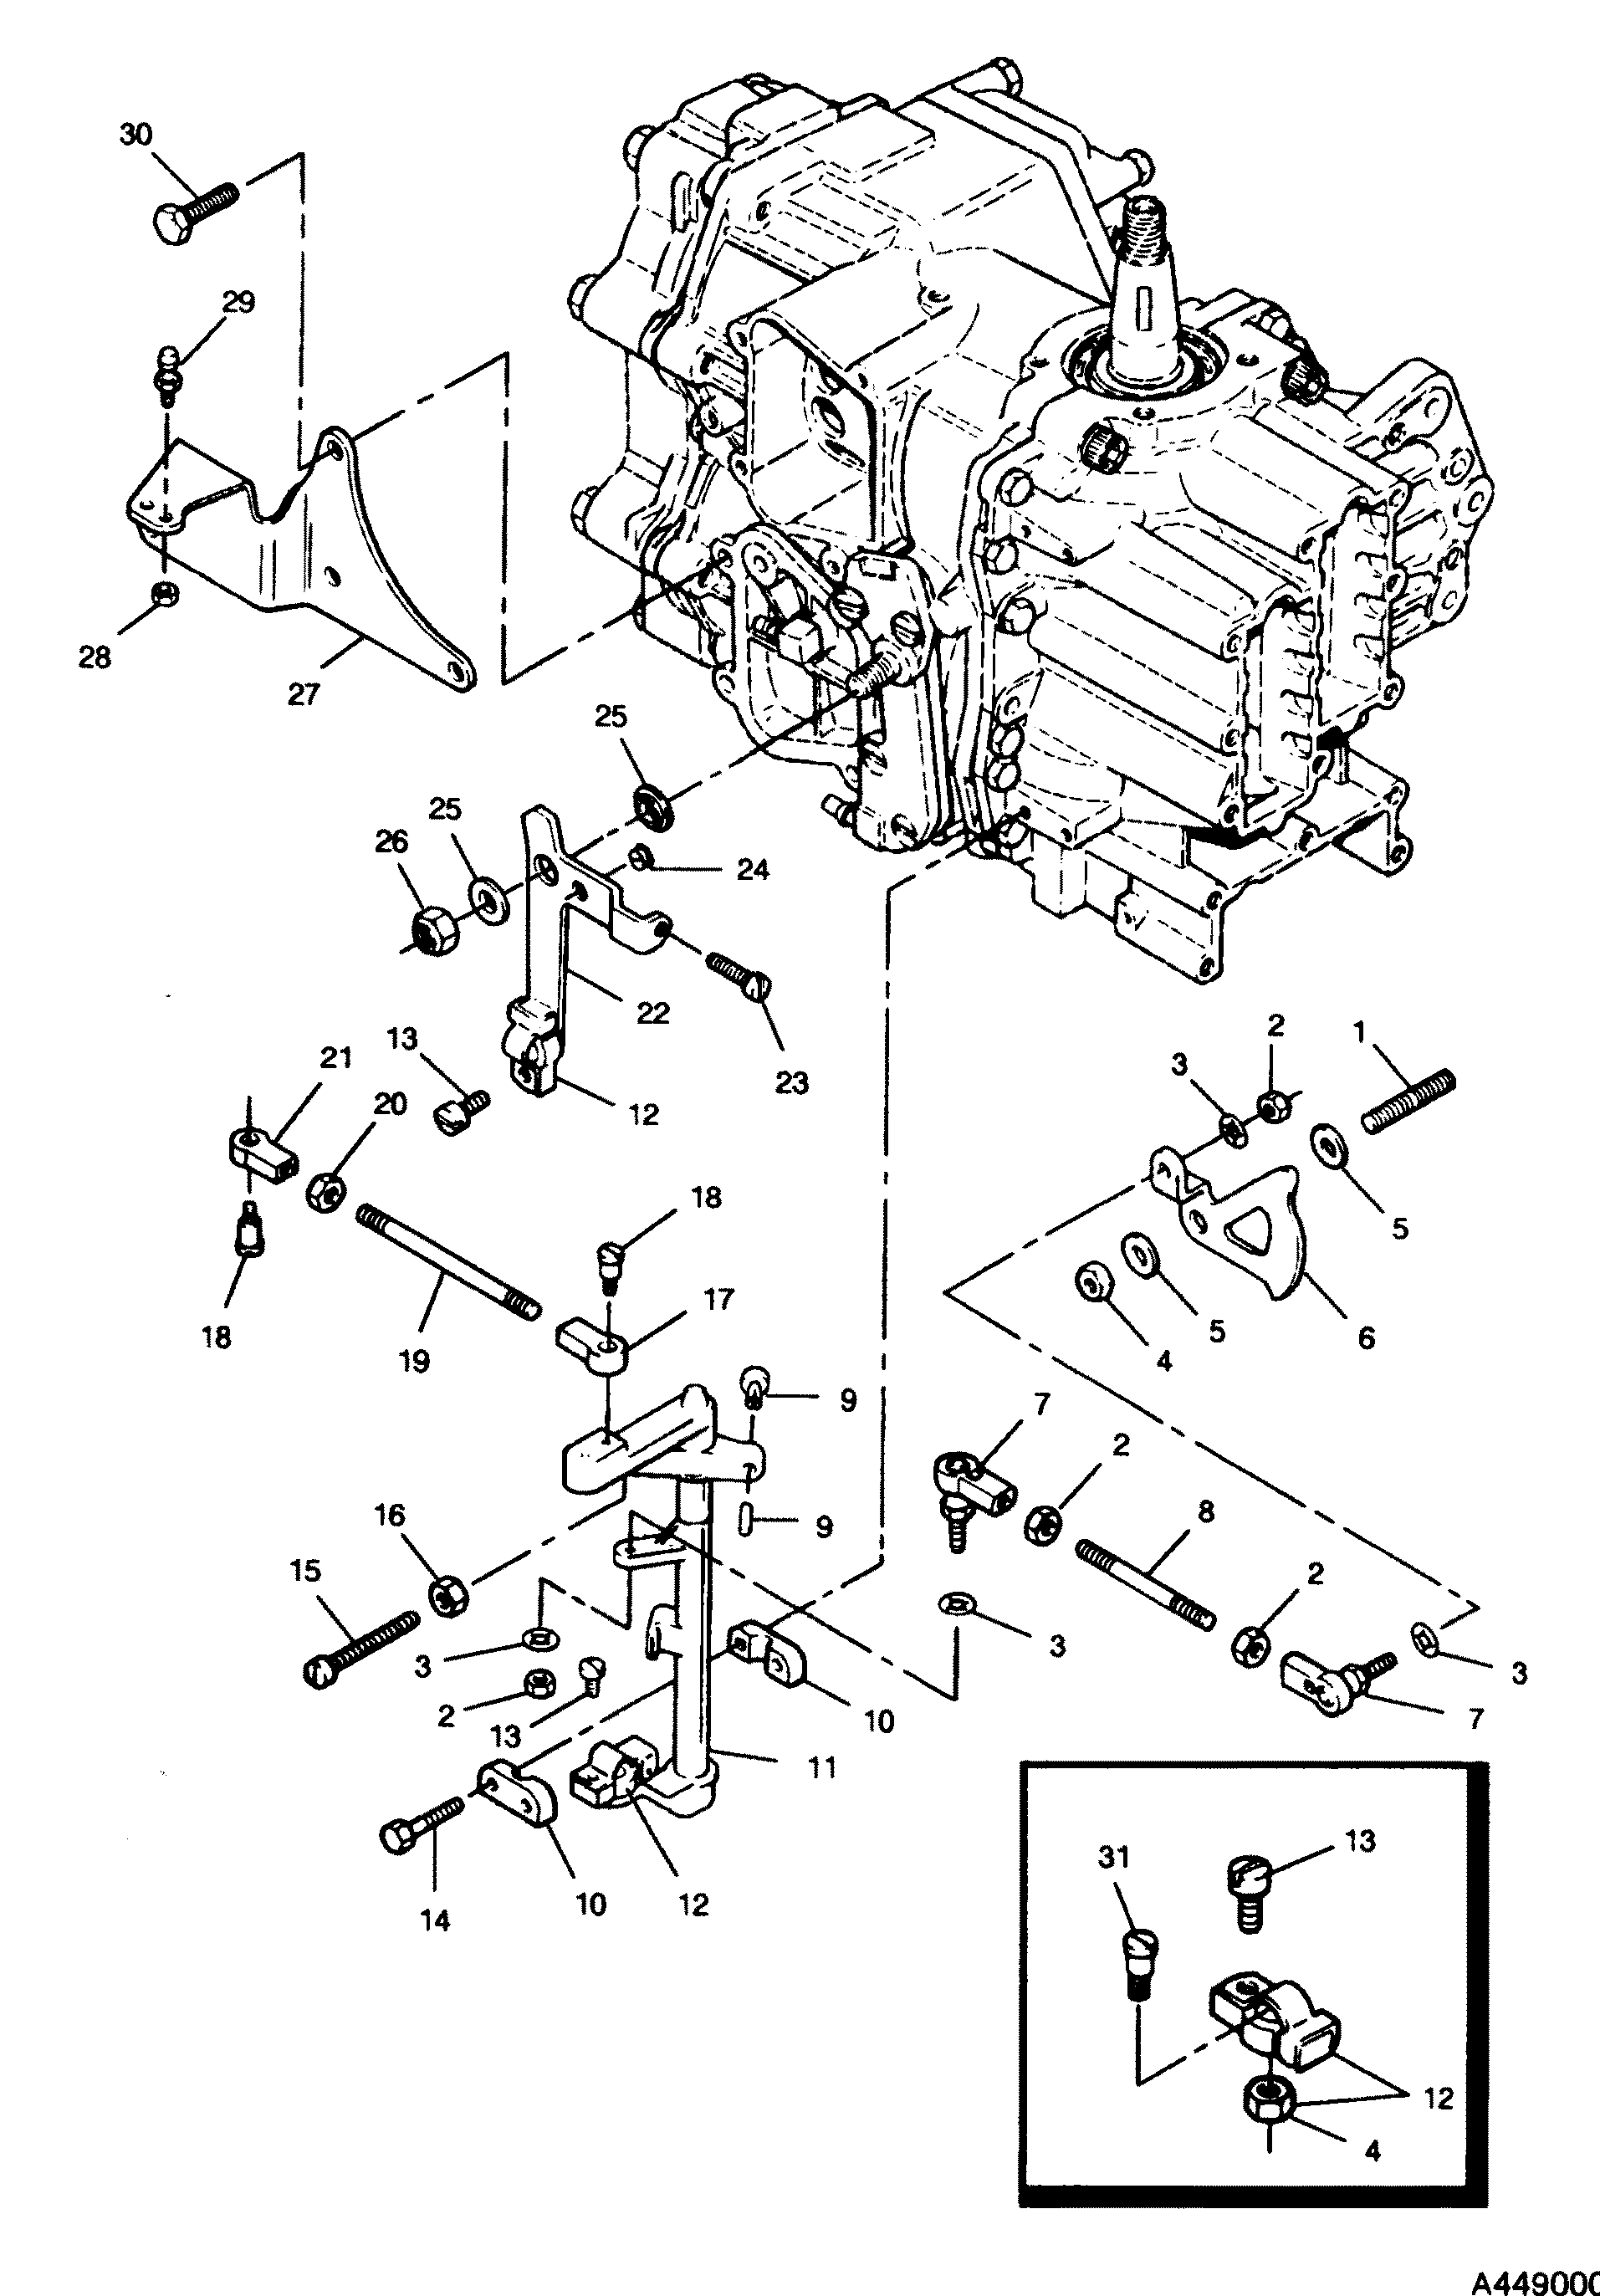 805 moreover 3972 likewise 5246 as well 3179 as well 1988 Omc Cobra Engine Diagram. on 1987 bayliner accessories